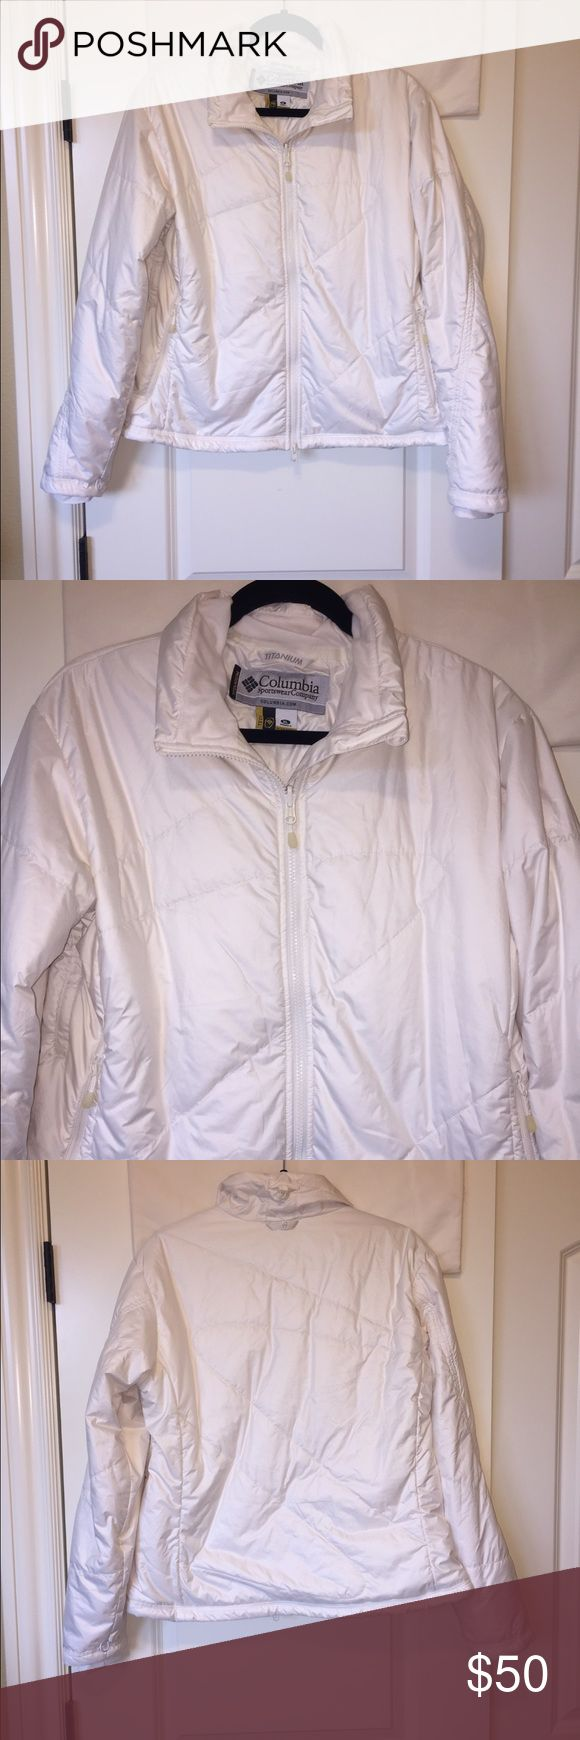 "Columbia Sportswear Titanium Interchange Jacket Women's Columbia Sportswear Titanium Interchange Jacket. Like new. Winter white color. Very warm without the bulkiness. Zippered pockets. cuffs inside sleeves to prevent drafts. Adjustable cinch at hem. 100% polyester. 26"" length from shoulder. Size XL. Columbia Jackets & Coats Puffers"